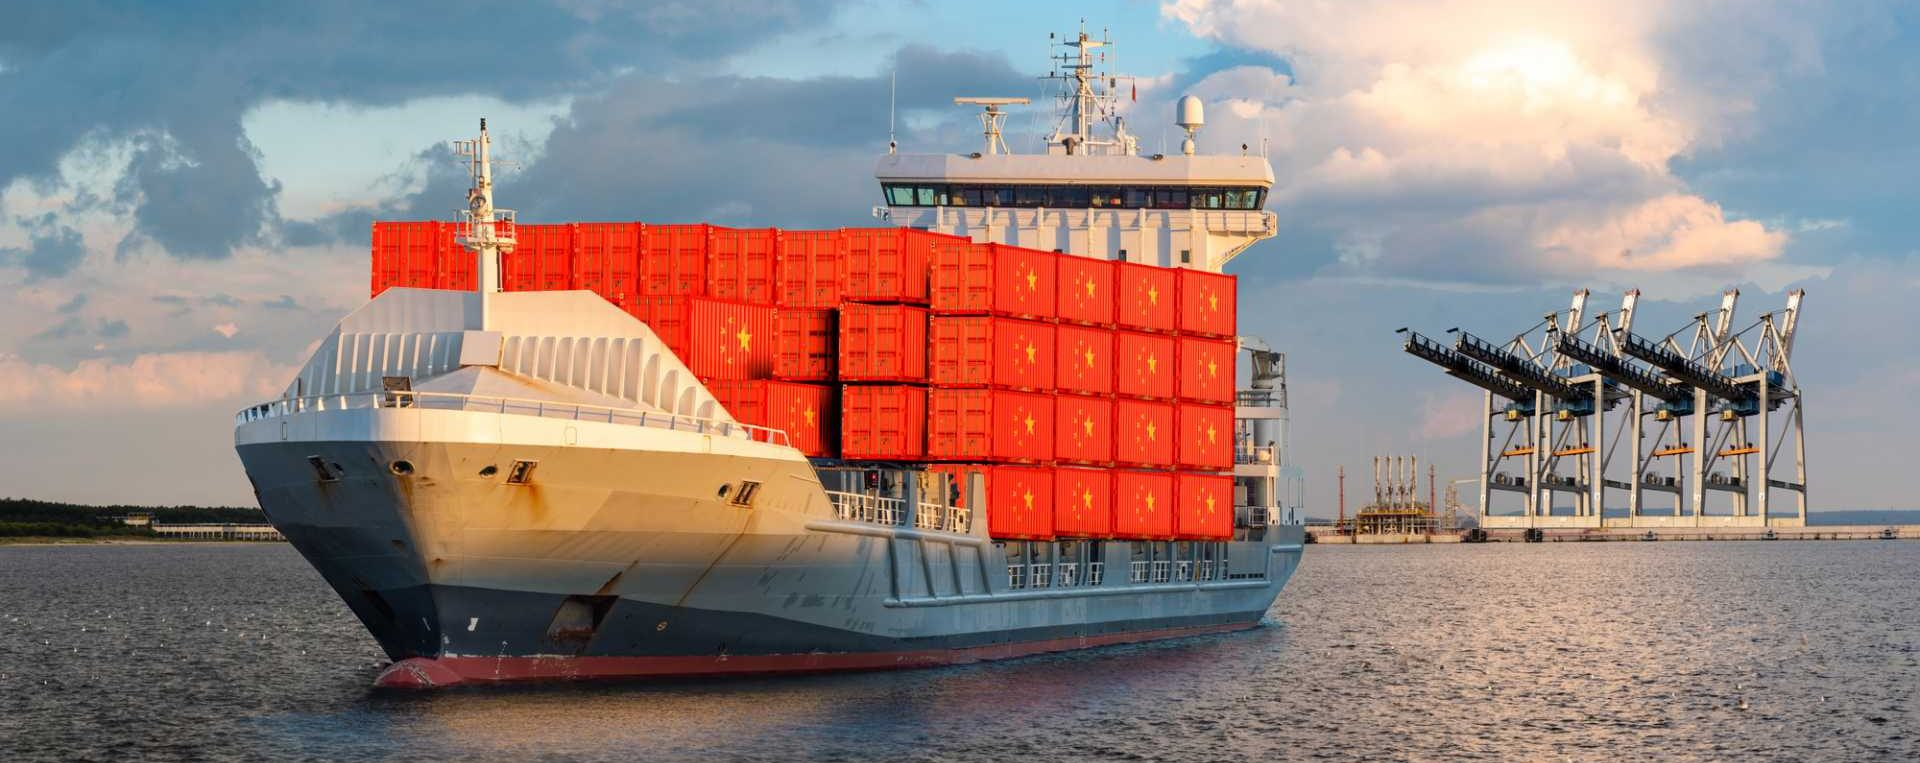 Container ship at sea carrying containers with flag of China - import export zero tariffs - supply chain - image courtesy of Depositphotos.